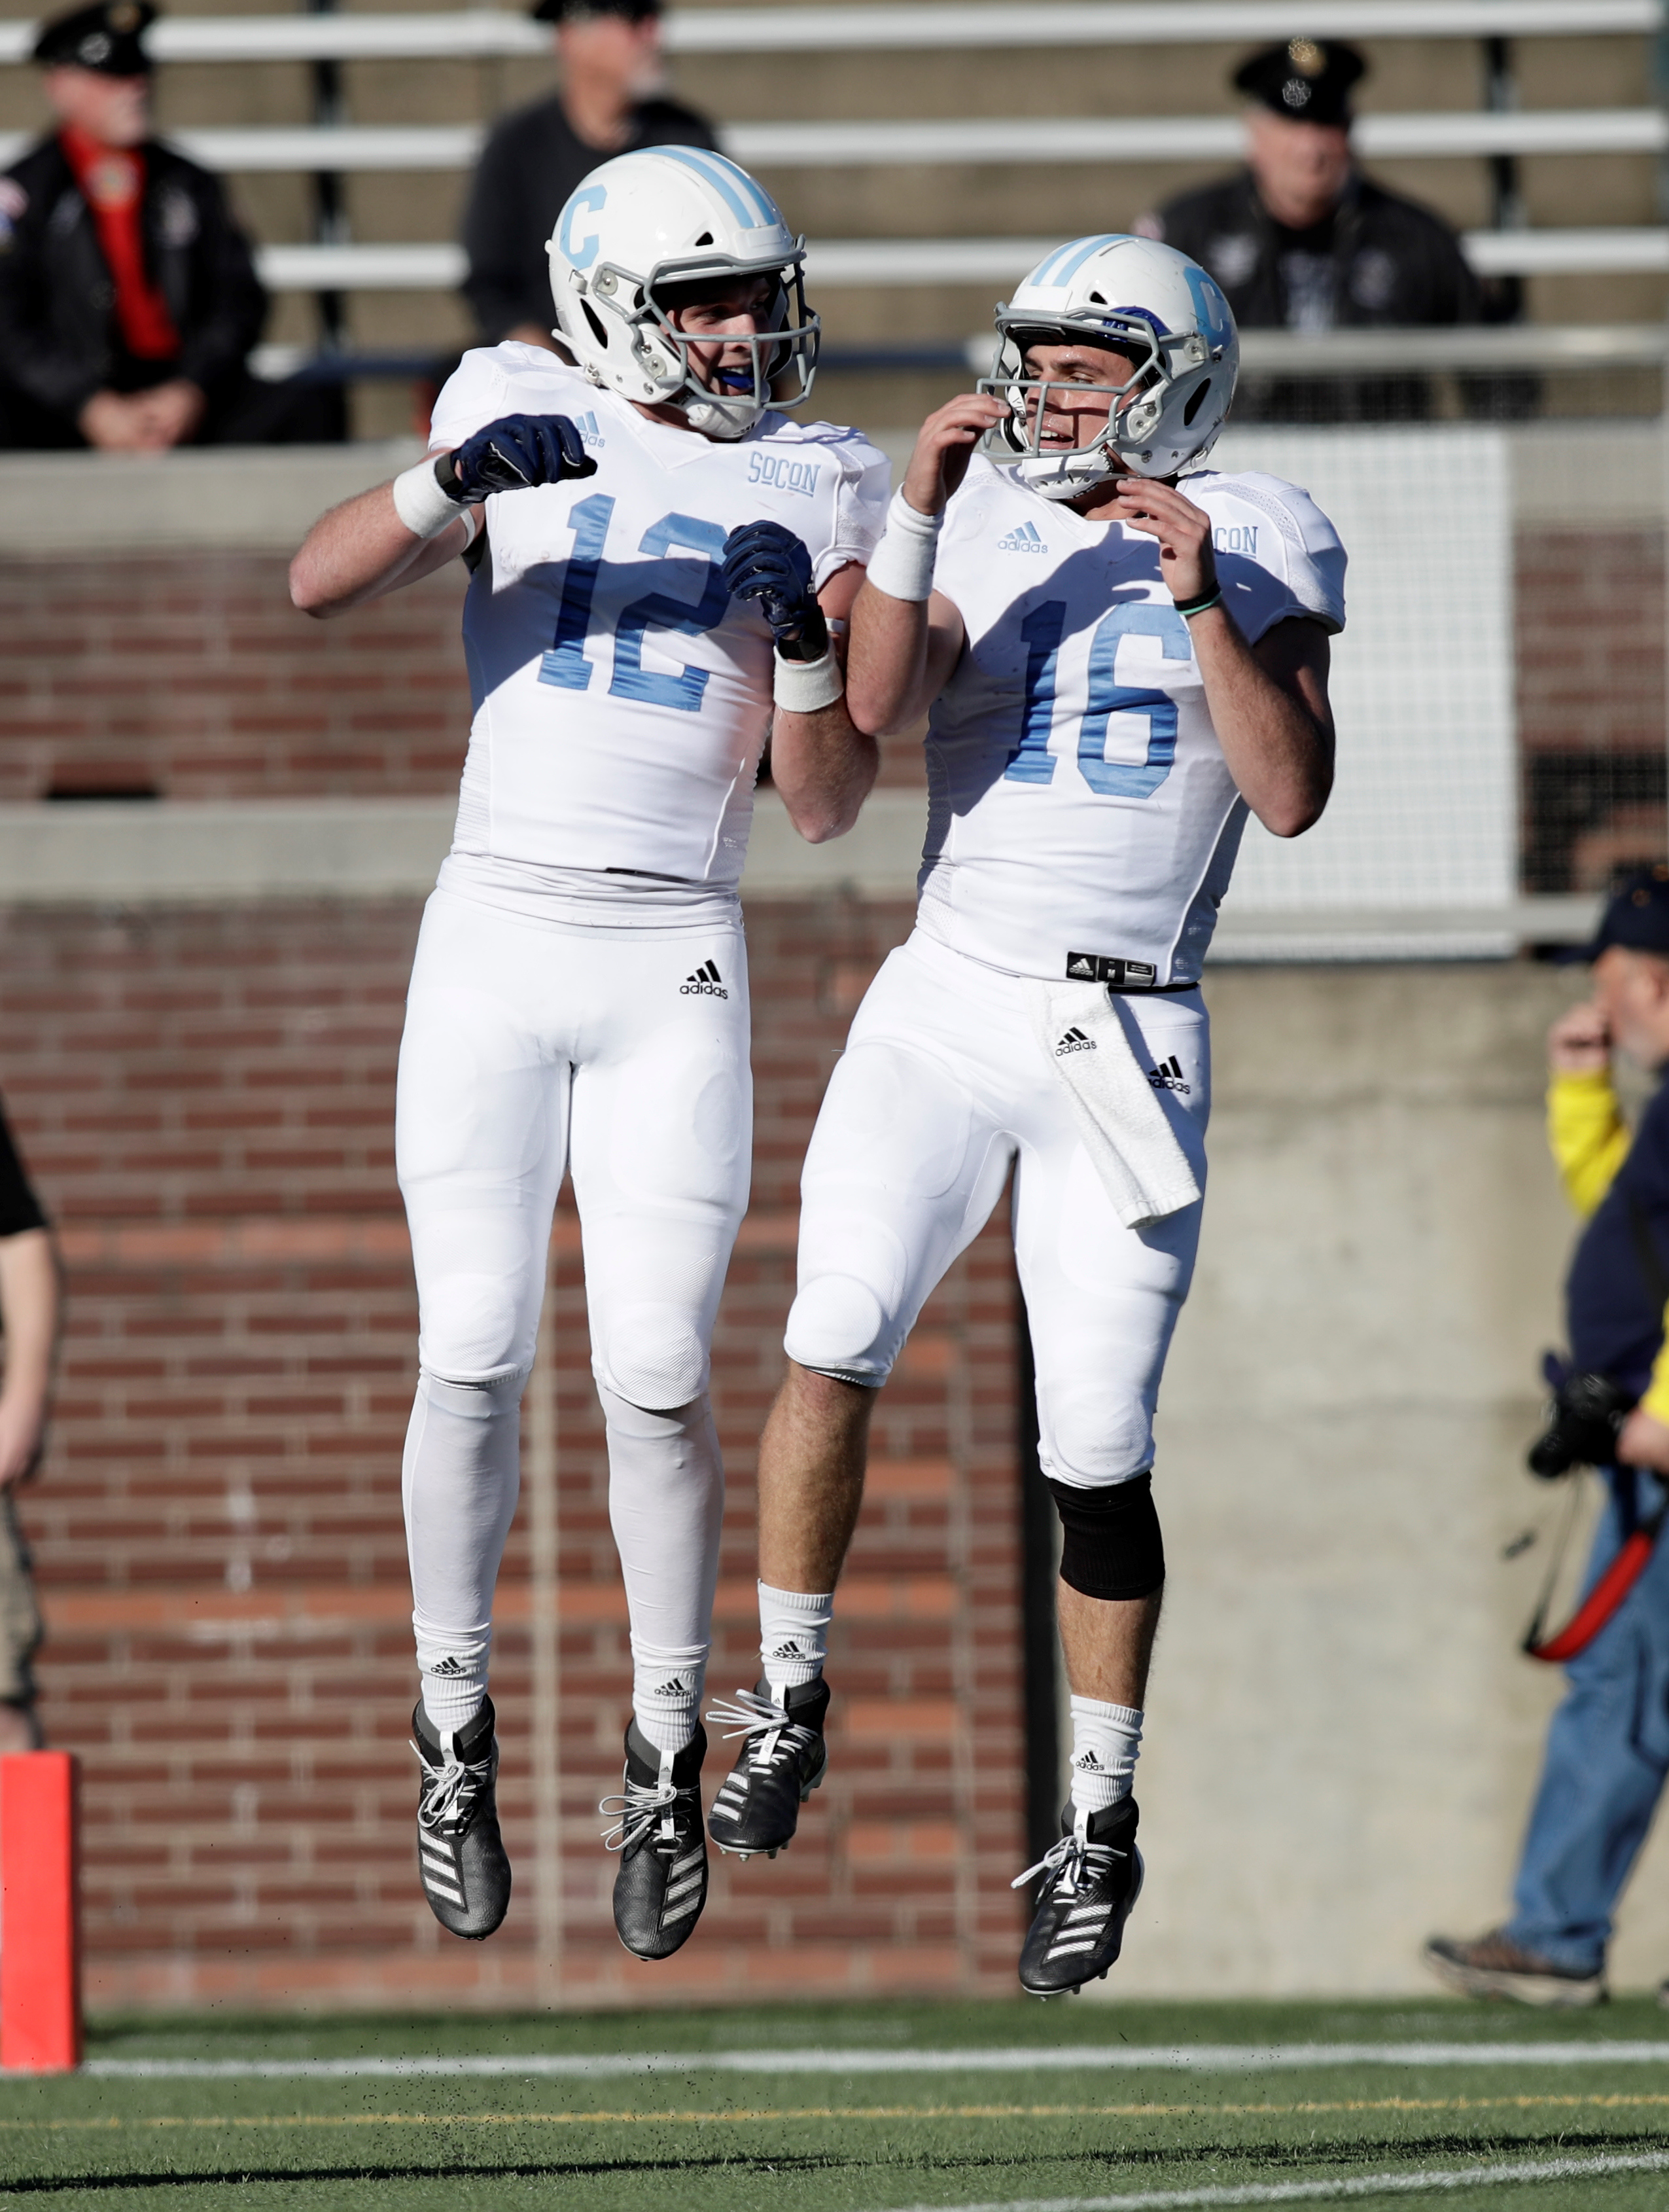 COLLEGE FOOTBALL: NOV 16 The Citadel at Chattanooga